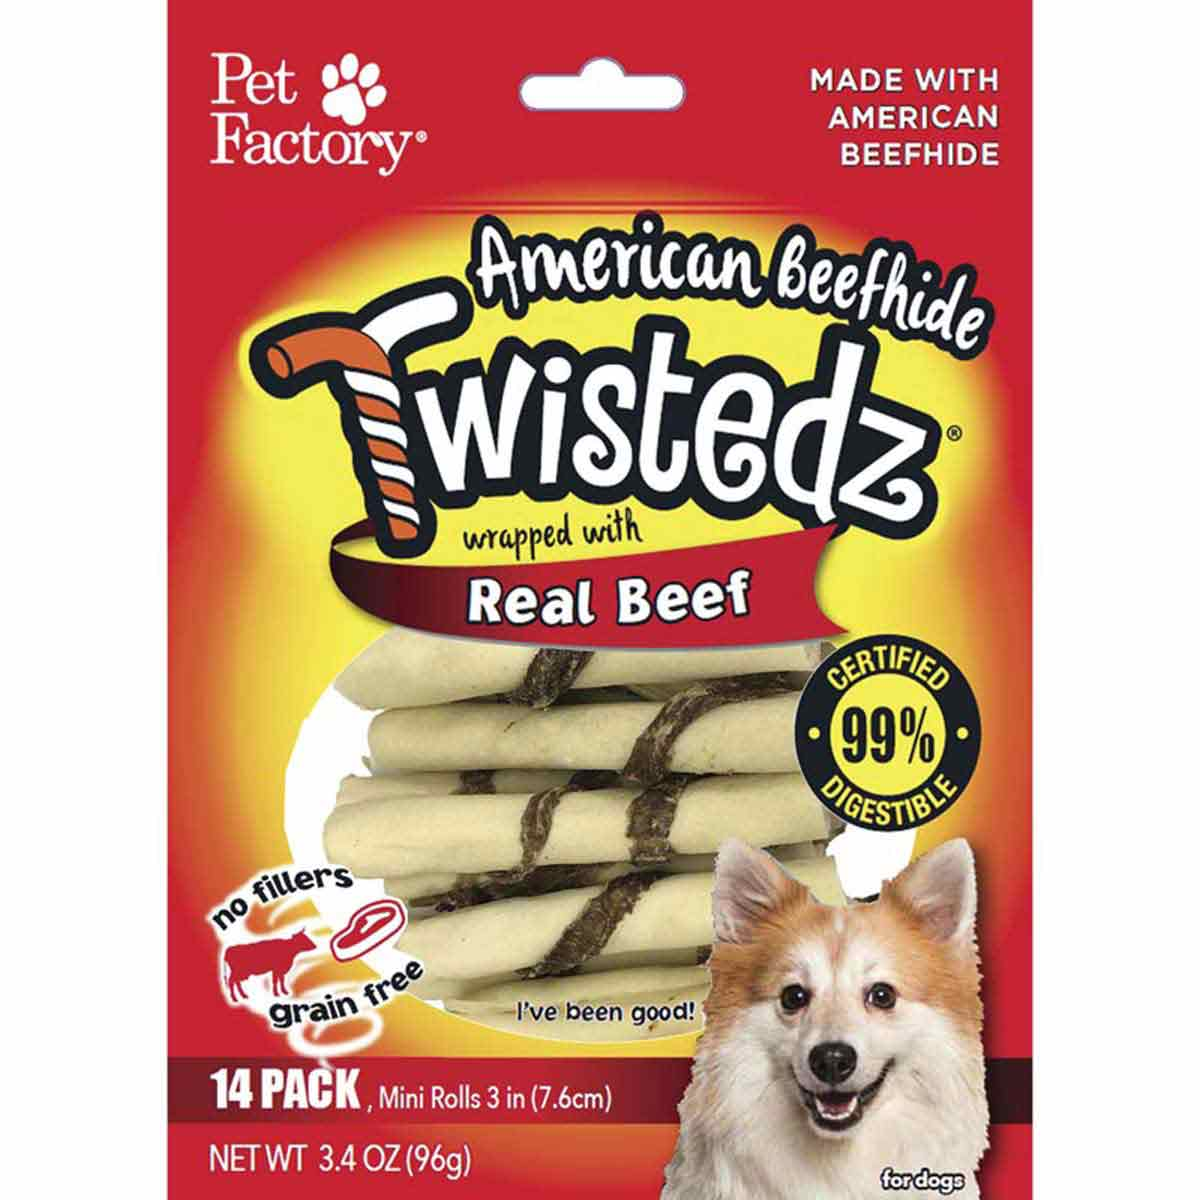 14 Pack Pet Factory Twistedz Beef 3-3.5 inch Rawhide Rolls Dog Treats